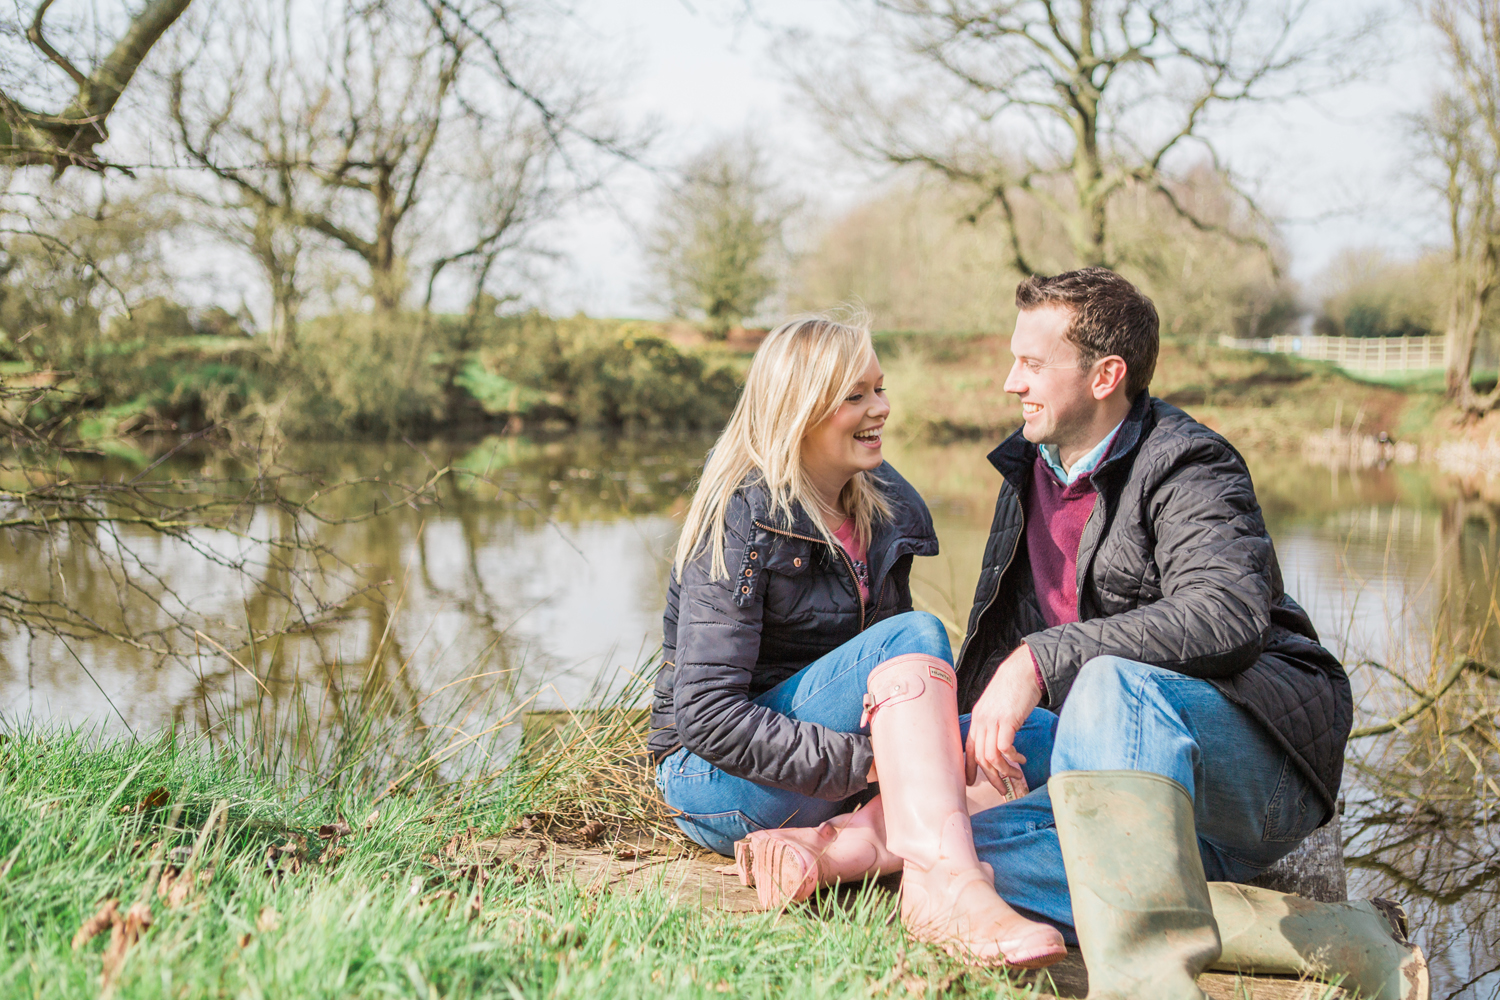 Sophie Evans Photography, Warwickshire Wedding Photography, Farm Engagement Shoot, Emma & Gus_003.jpg